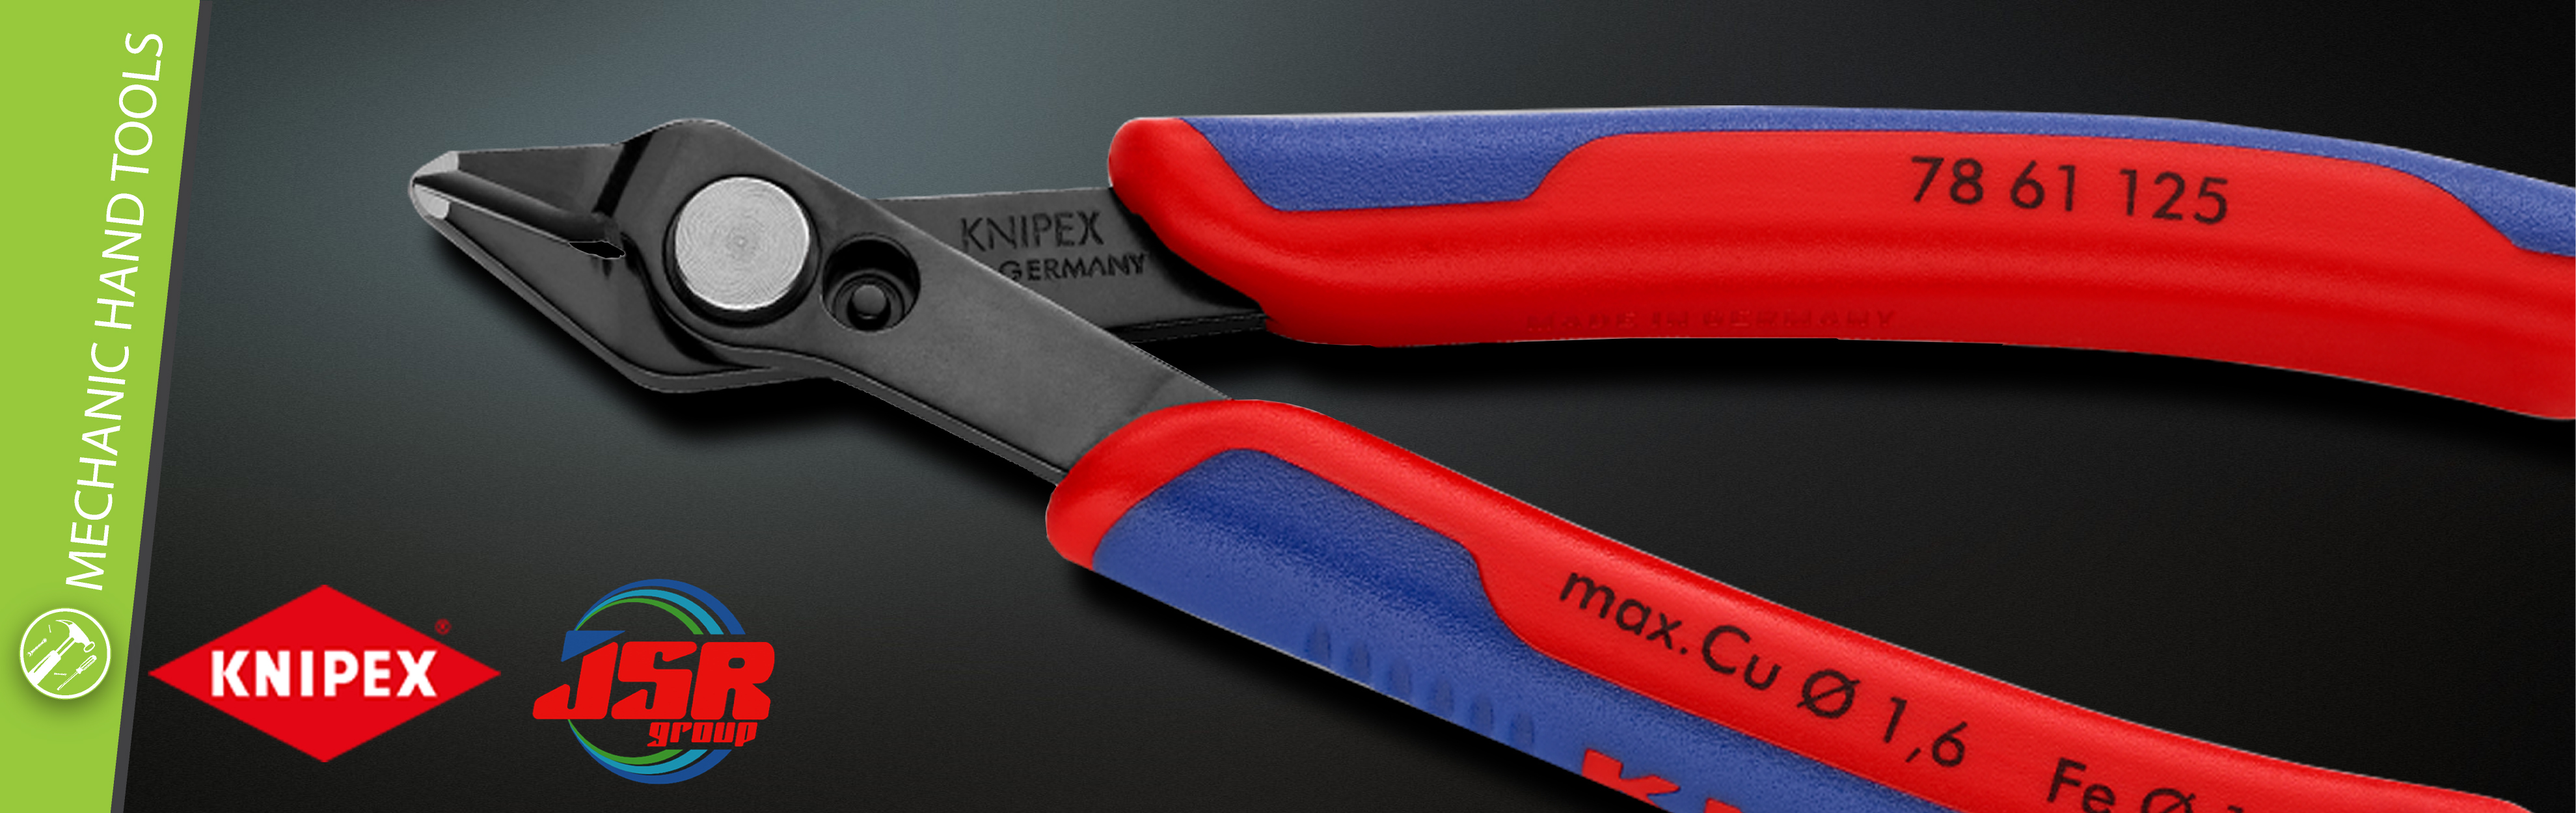 คีม knipex jsr group